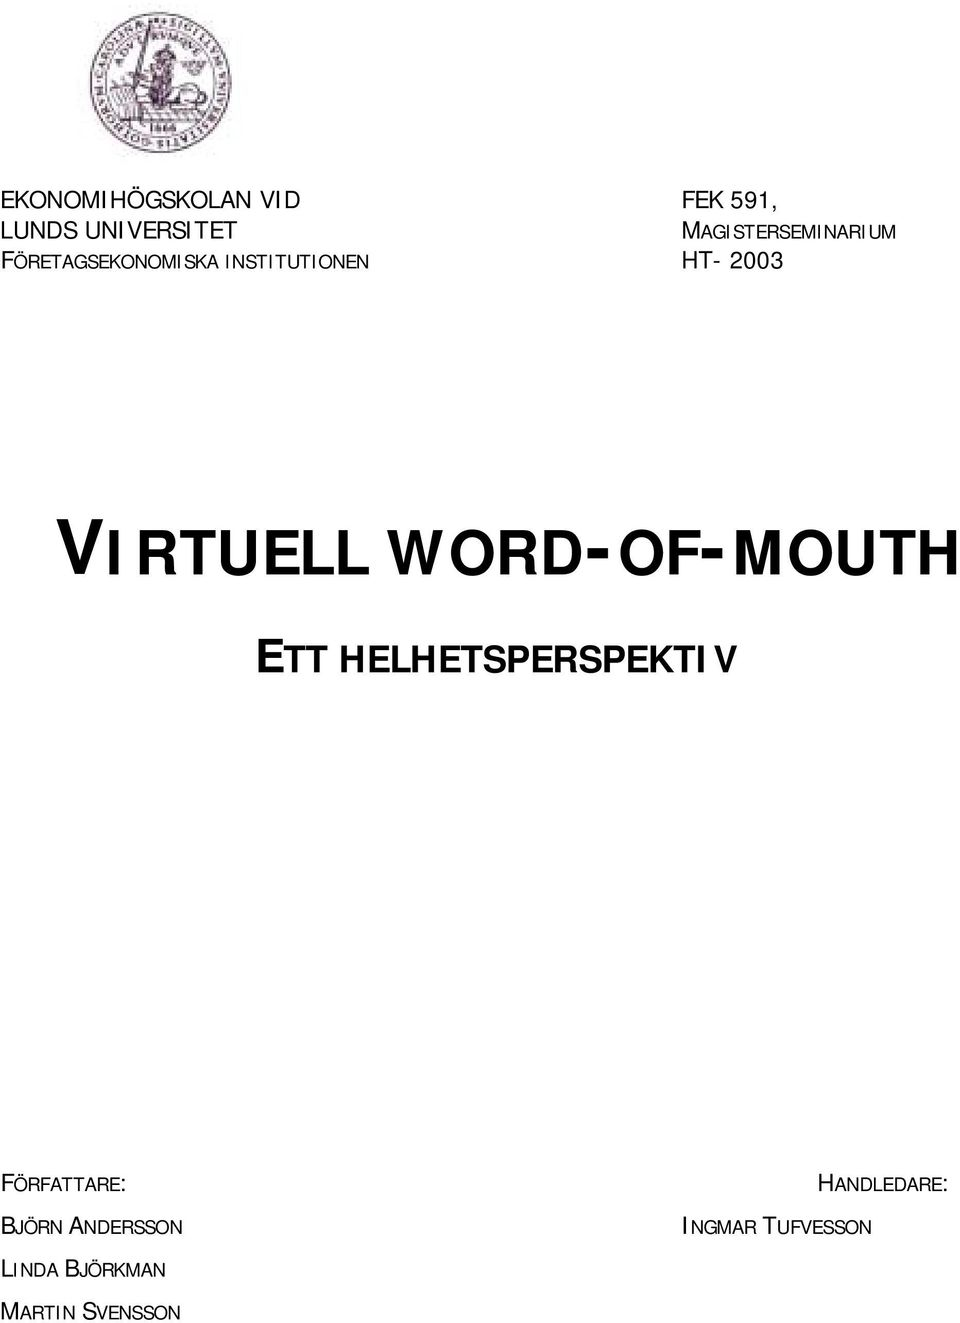 VIRTUELL WORD-OF-MOUTH ETT HELHETSPERSPEKTIV FÖRFATTARE: